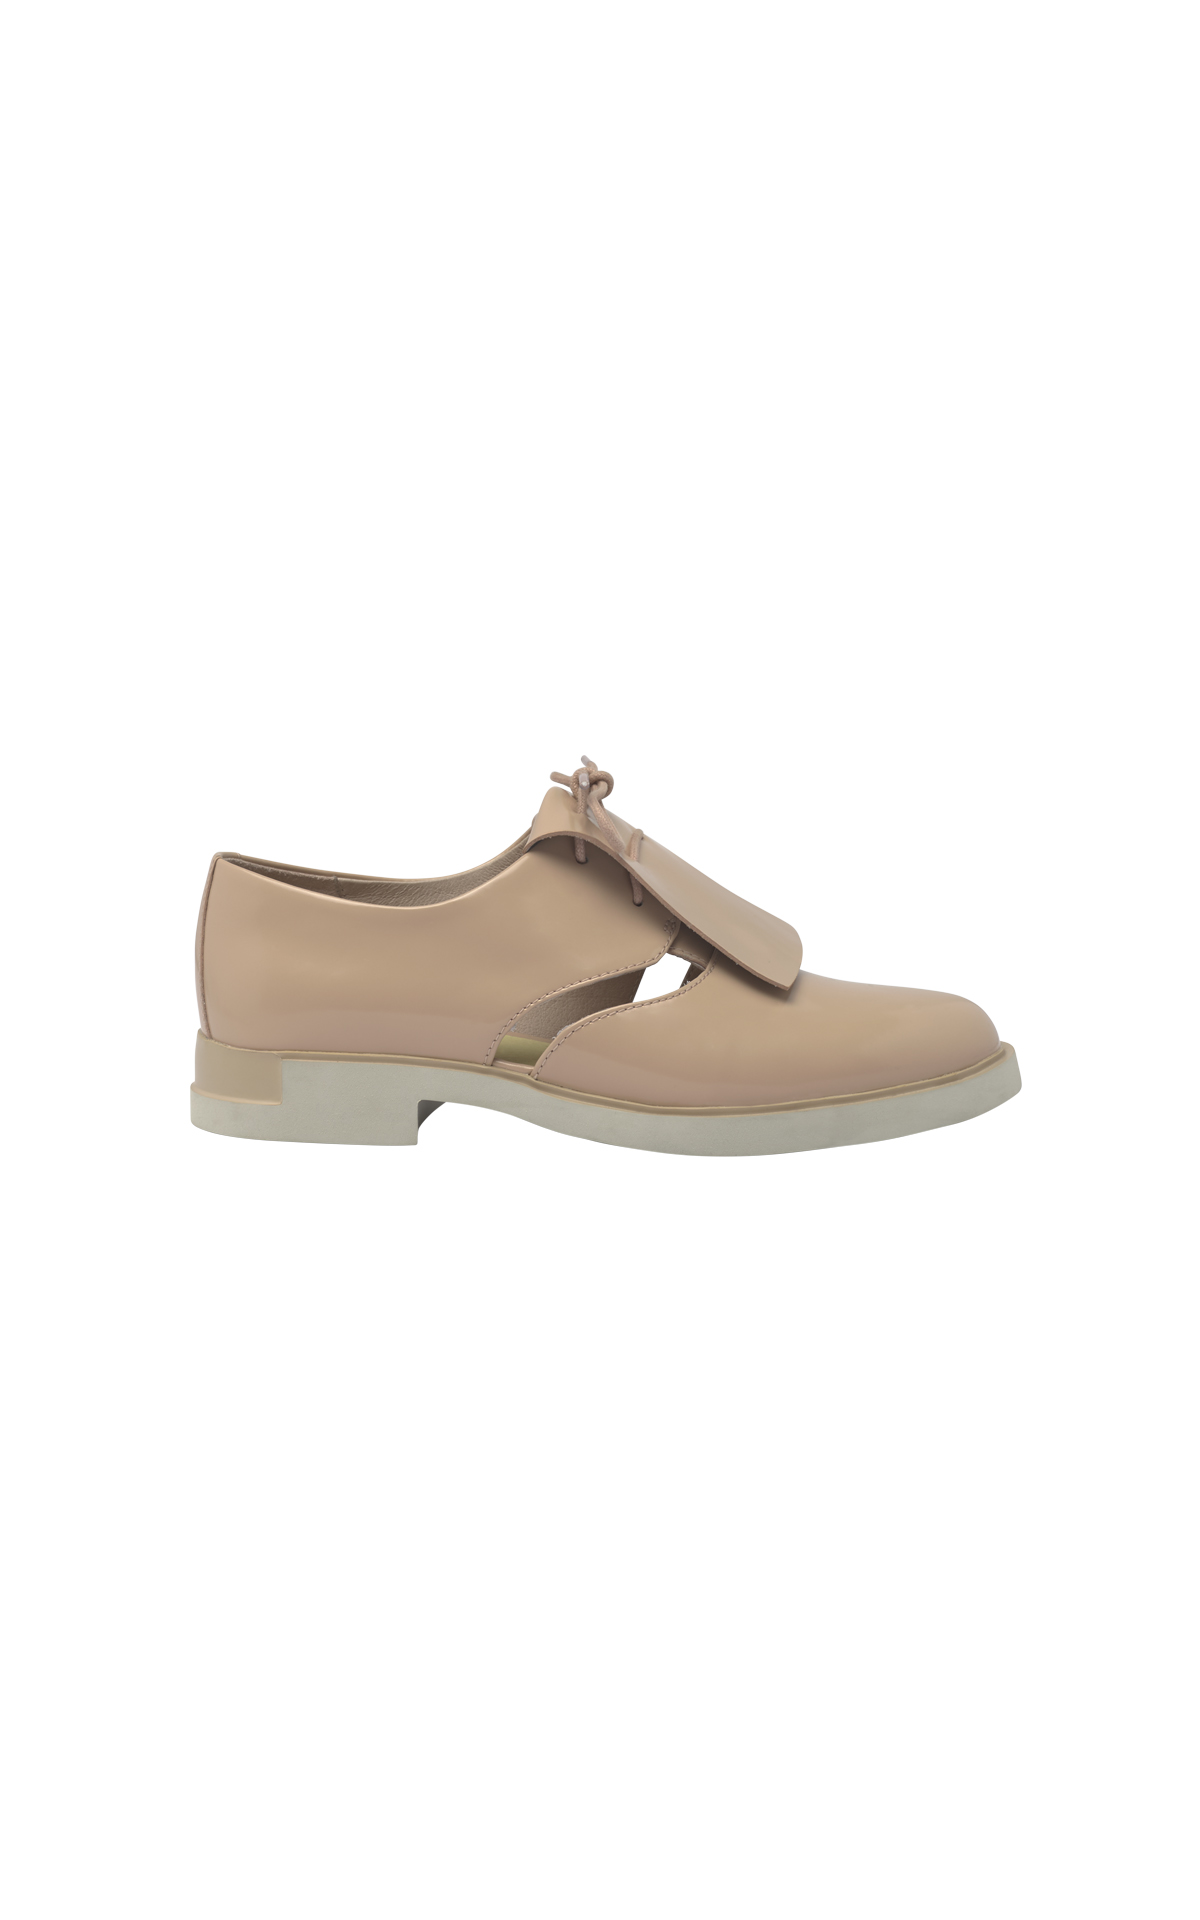 Women's nude shoes Camper